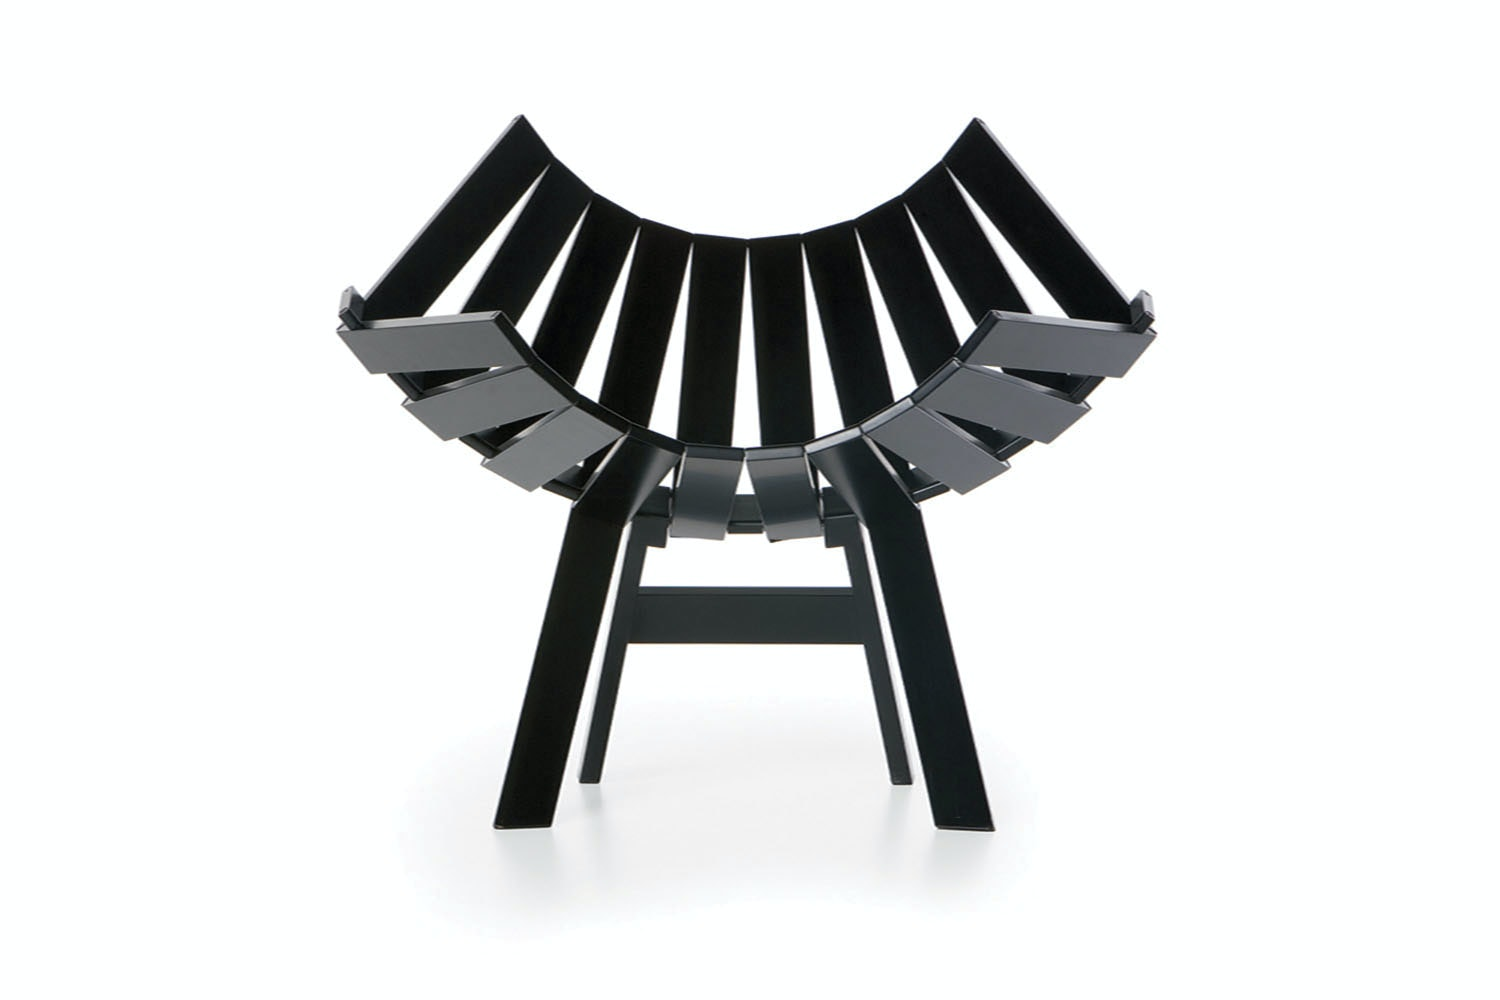 Clip Chair by Blasius Osko & Oliver Deichmann for Moooi